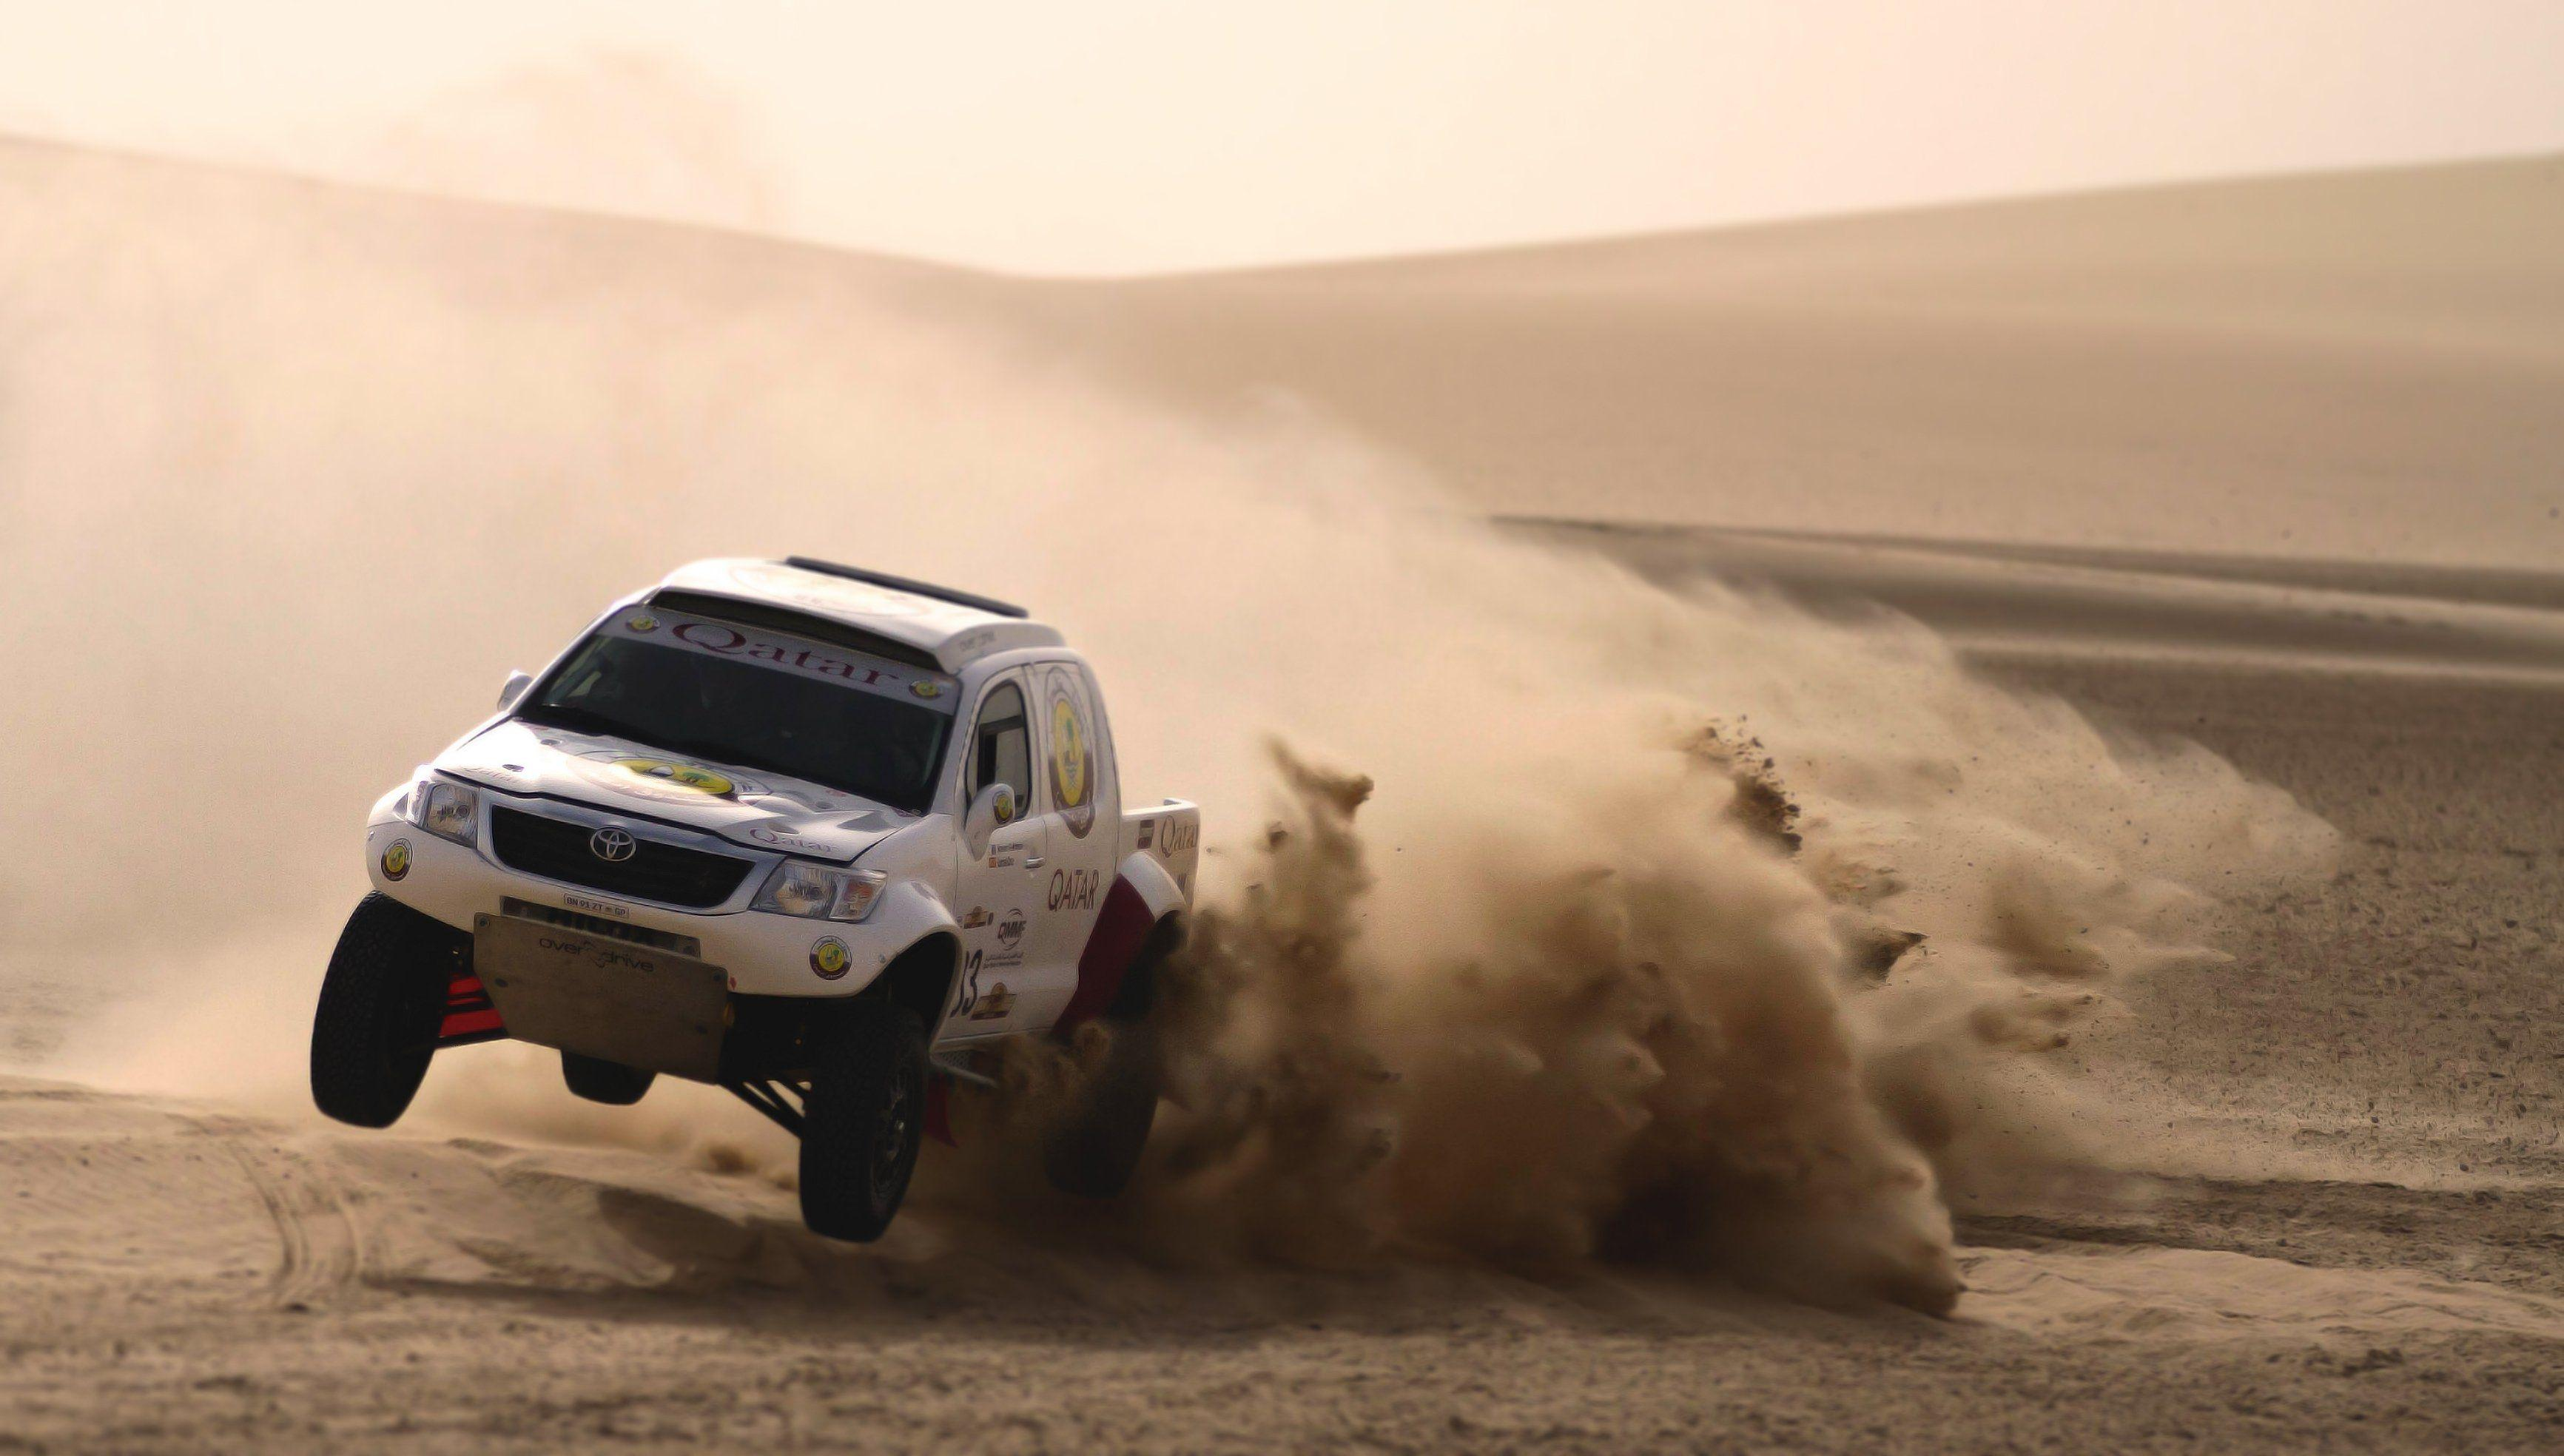 hilux wallpapers